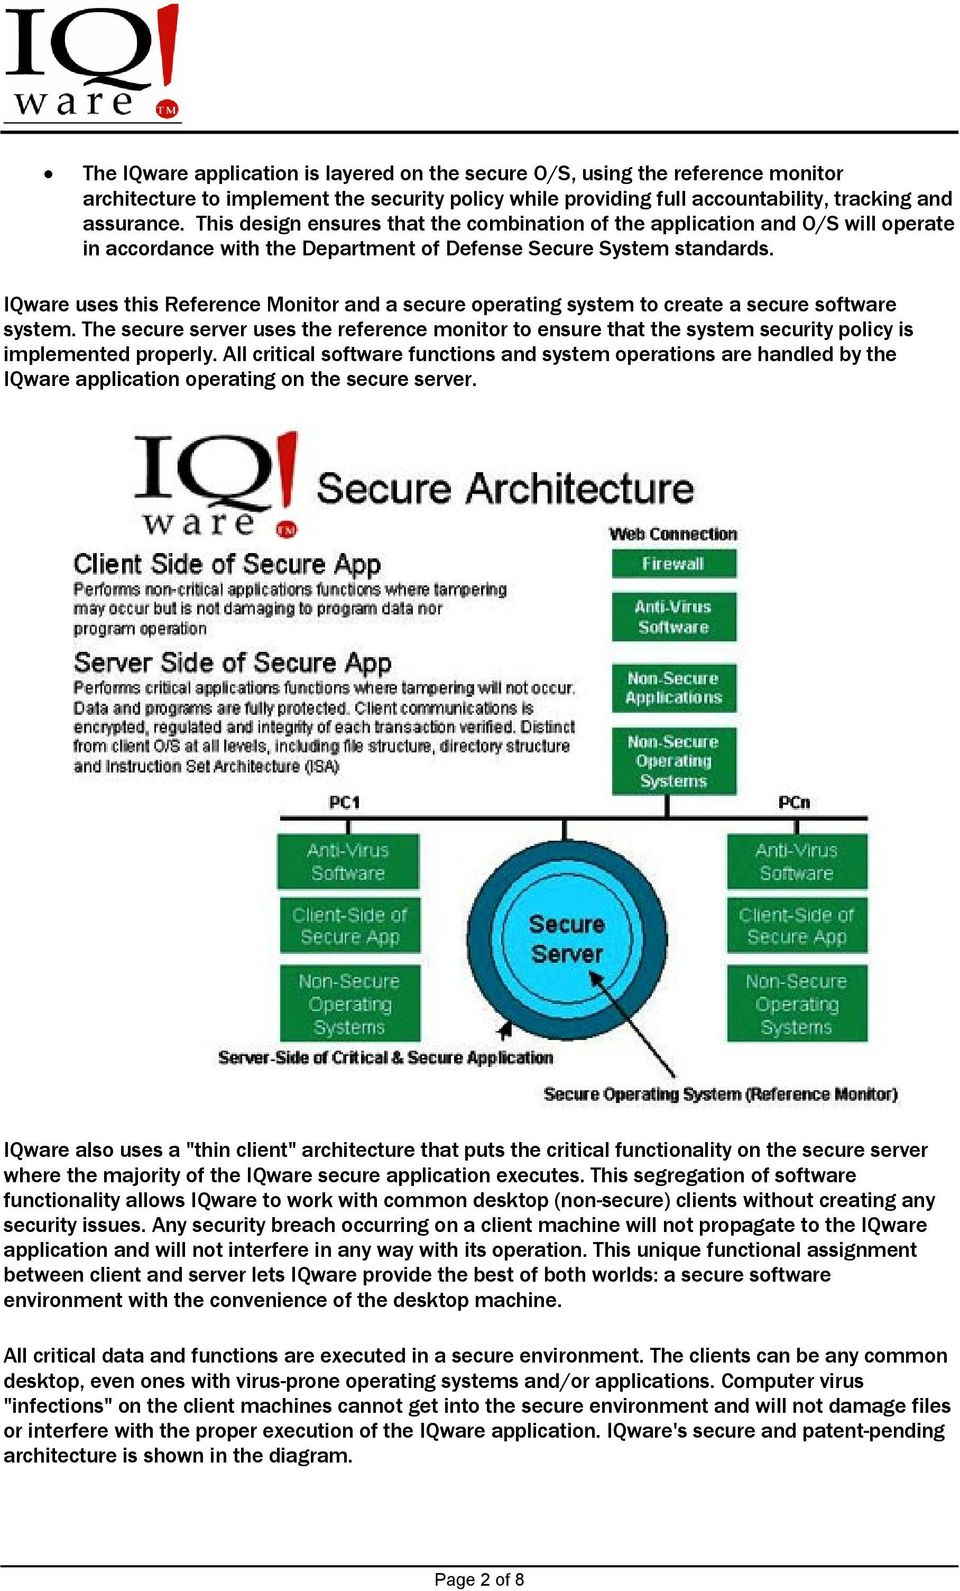 IQware uses this Reference Monitor and a secure operating system to create a secure software system.